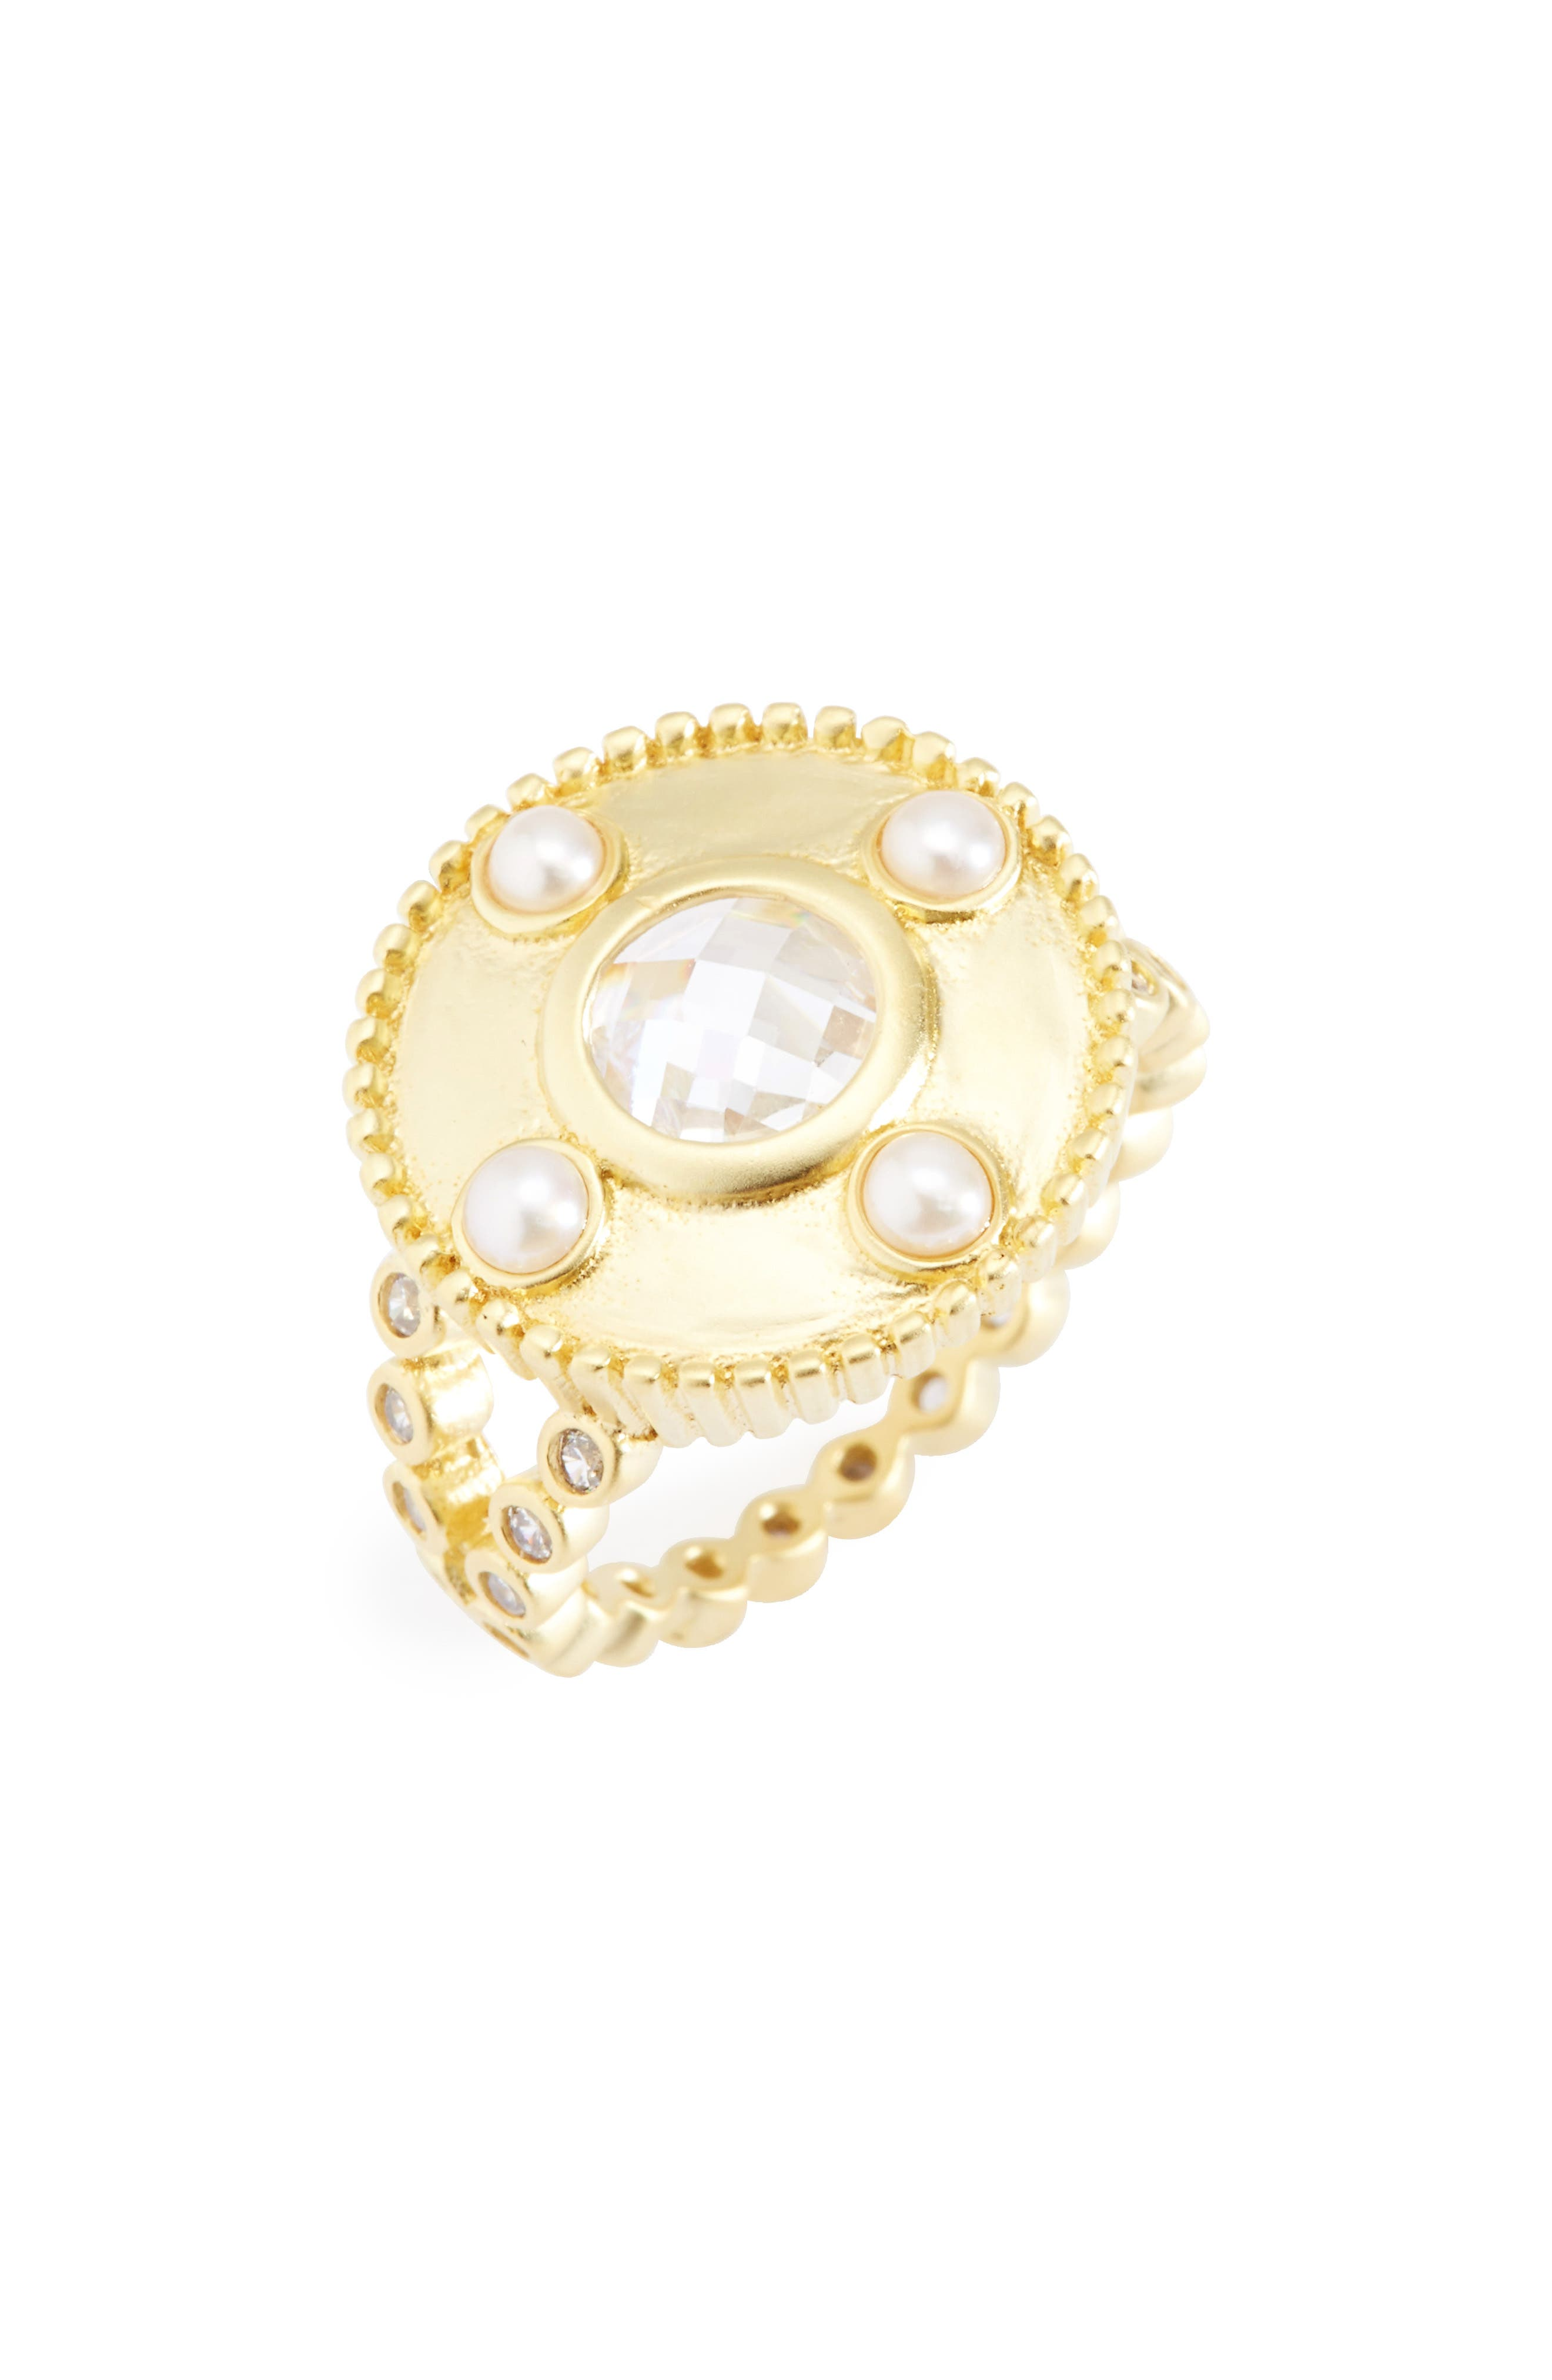 Main Image - FREIDA ROTHMAN Audrey Studded Cocktail Ring